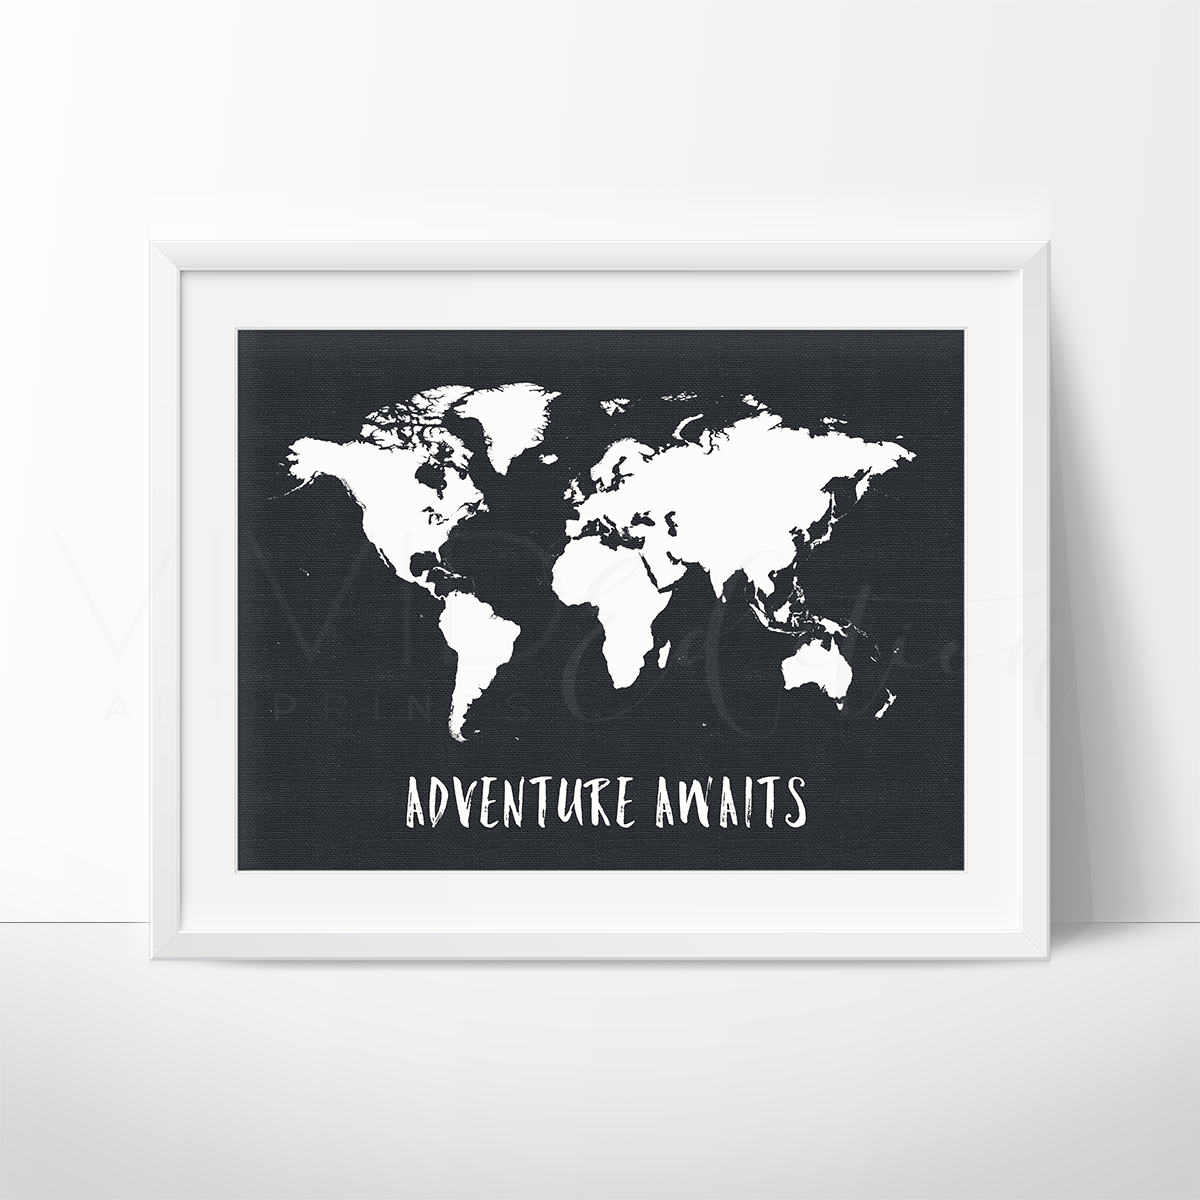 To travel is to live travel quote world map nursery wall art adventure awaits world map black white art print vivideditions gumiabroncs Images